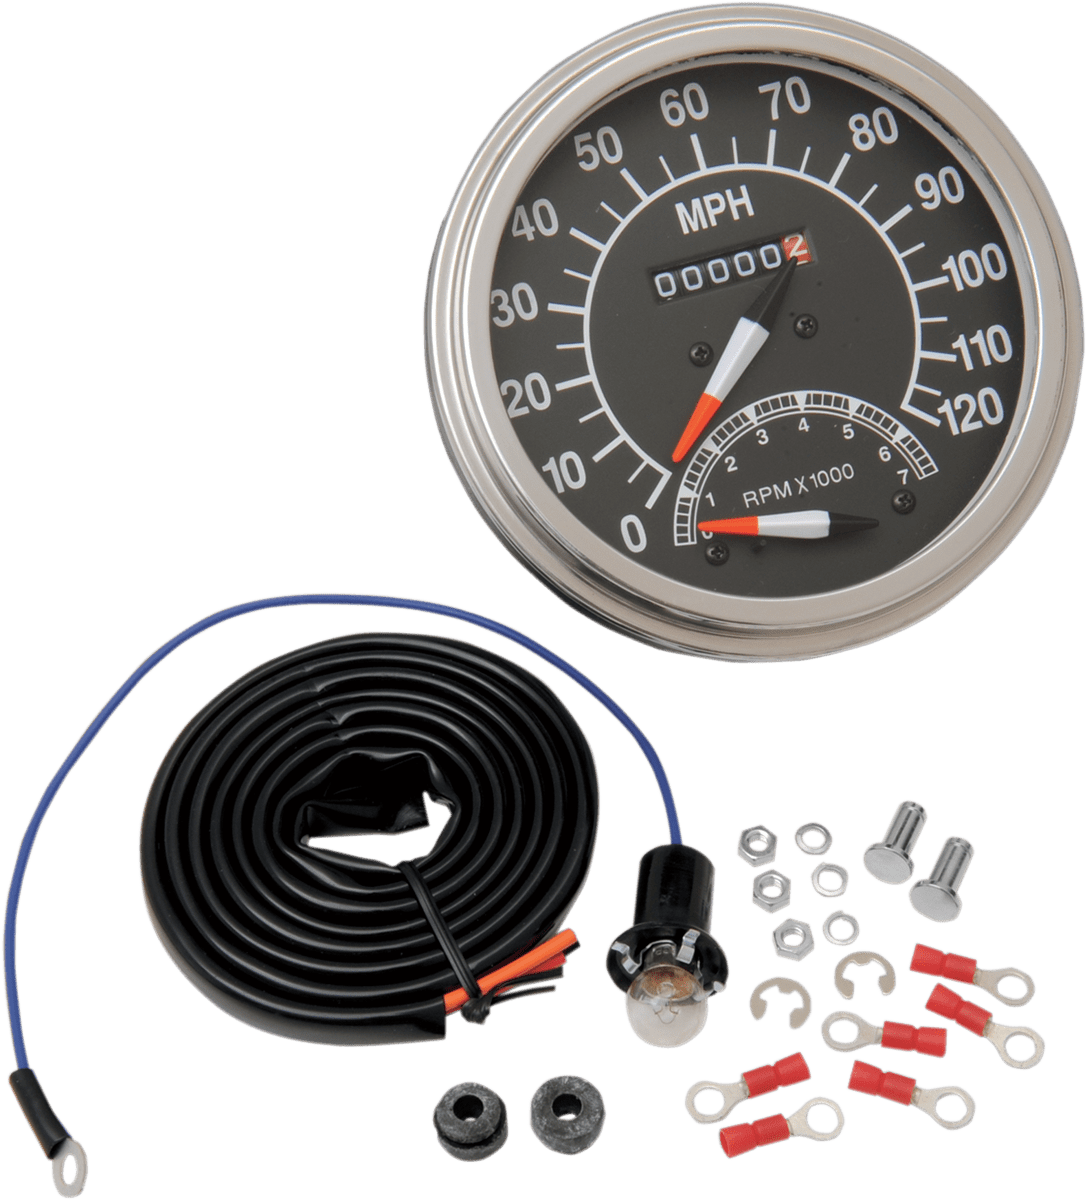 small resolution of sunpro super tach 2 wiring diagram camaro wiring library rh 17 mac happen de sun tachometer wiring sun tachometer wiring diagram